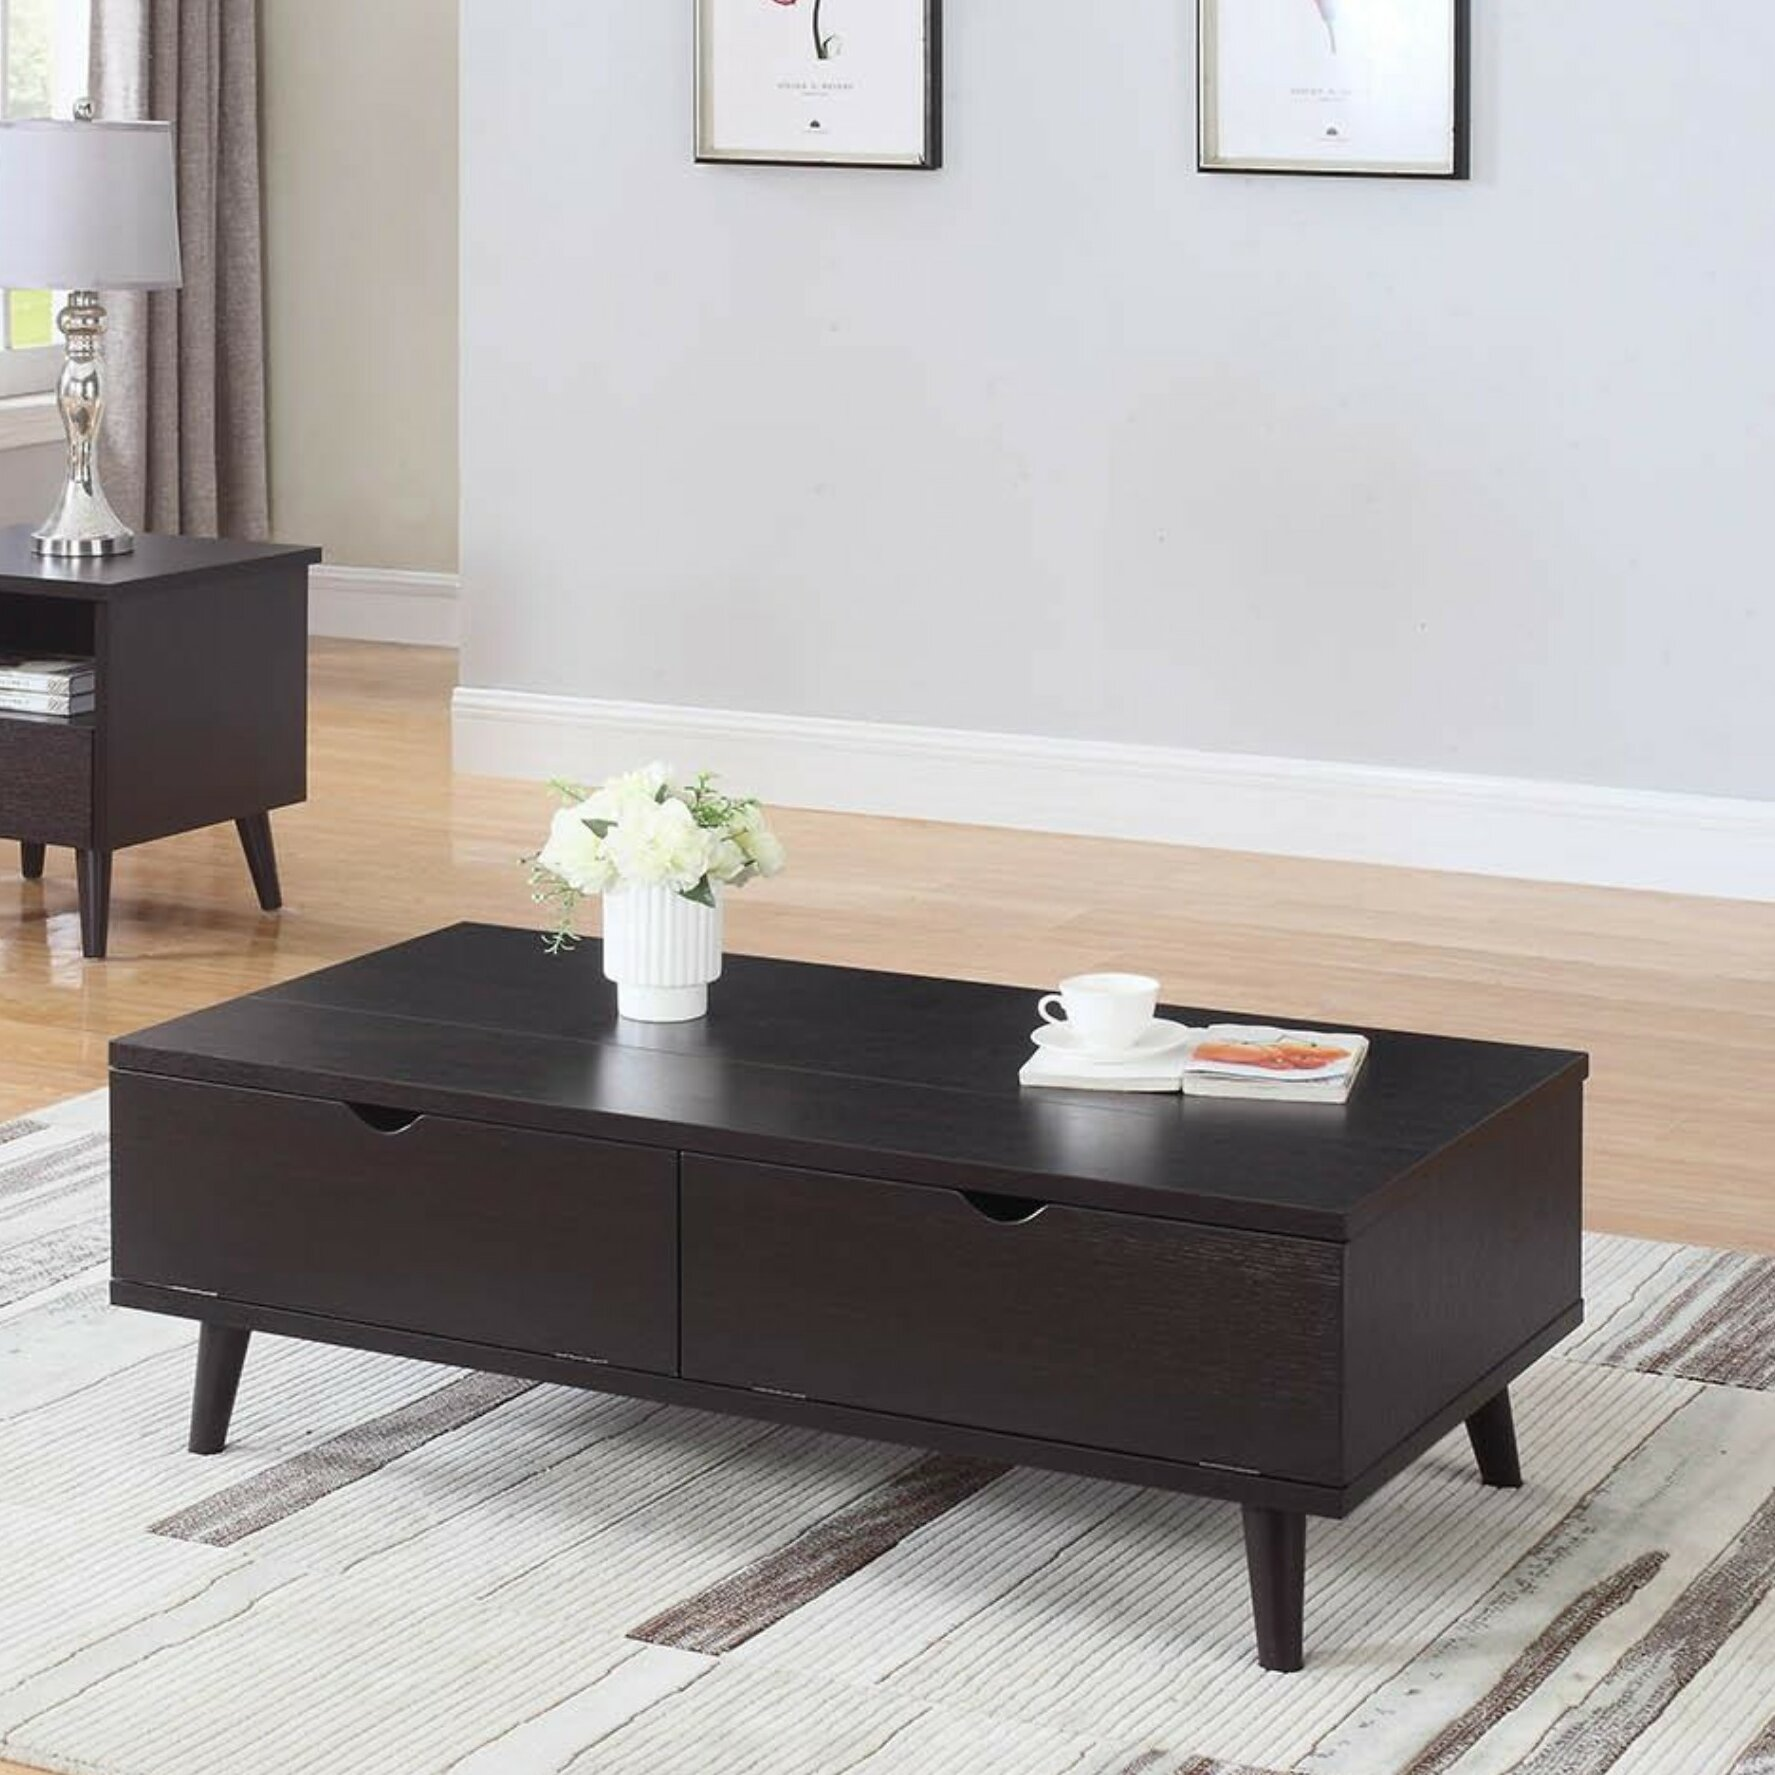 George Oliver Bueno Modern Lift Top Wooden Coffee Table With